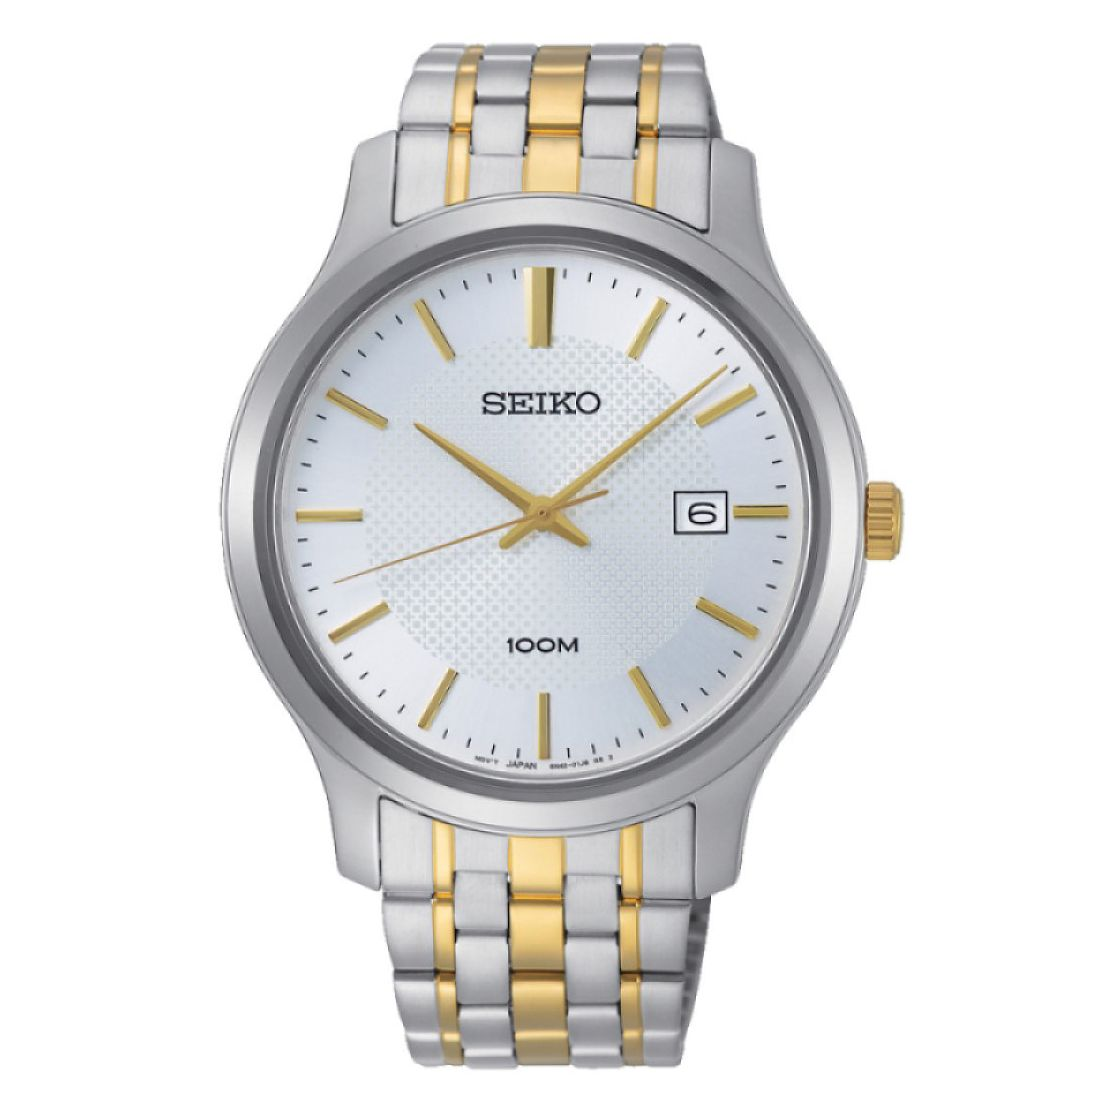 Seiko Men's White Dial Two Tone Bracelet Watch - Product number 2948516